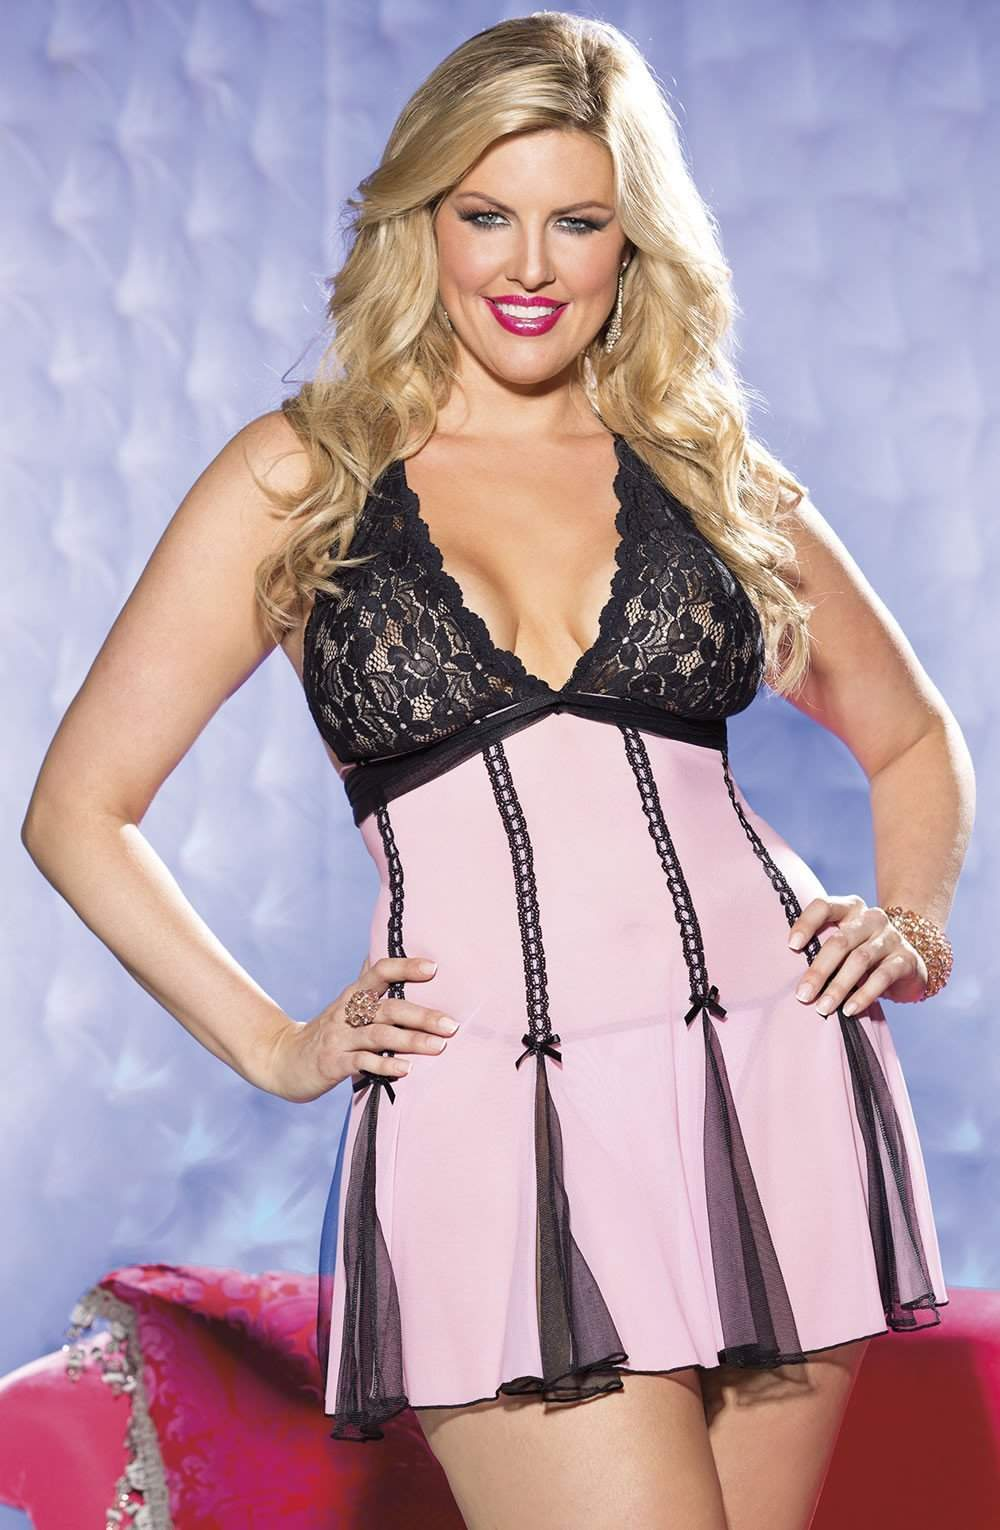 SoH-IA Stretch Lace Babydoll Pink/Black - Shirley of Hollywood - Katys Boutique Lingerie USA